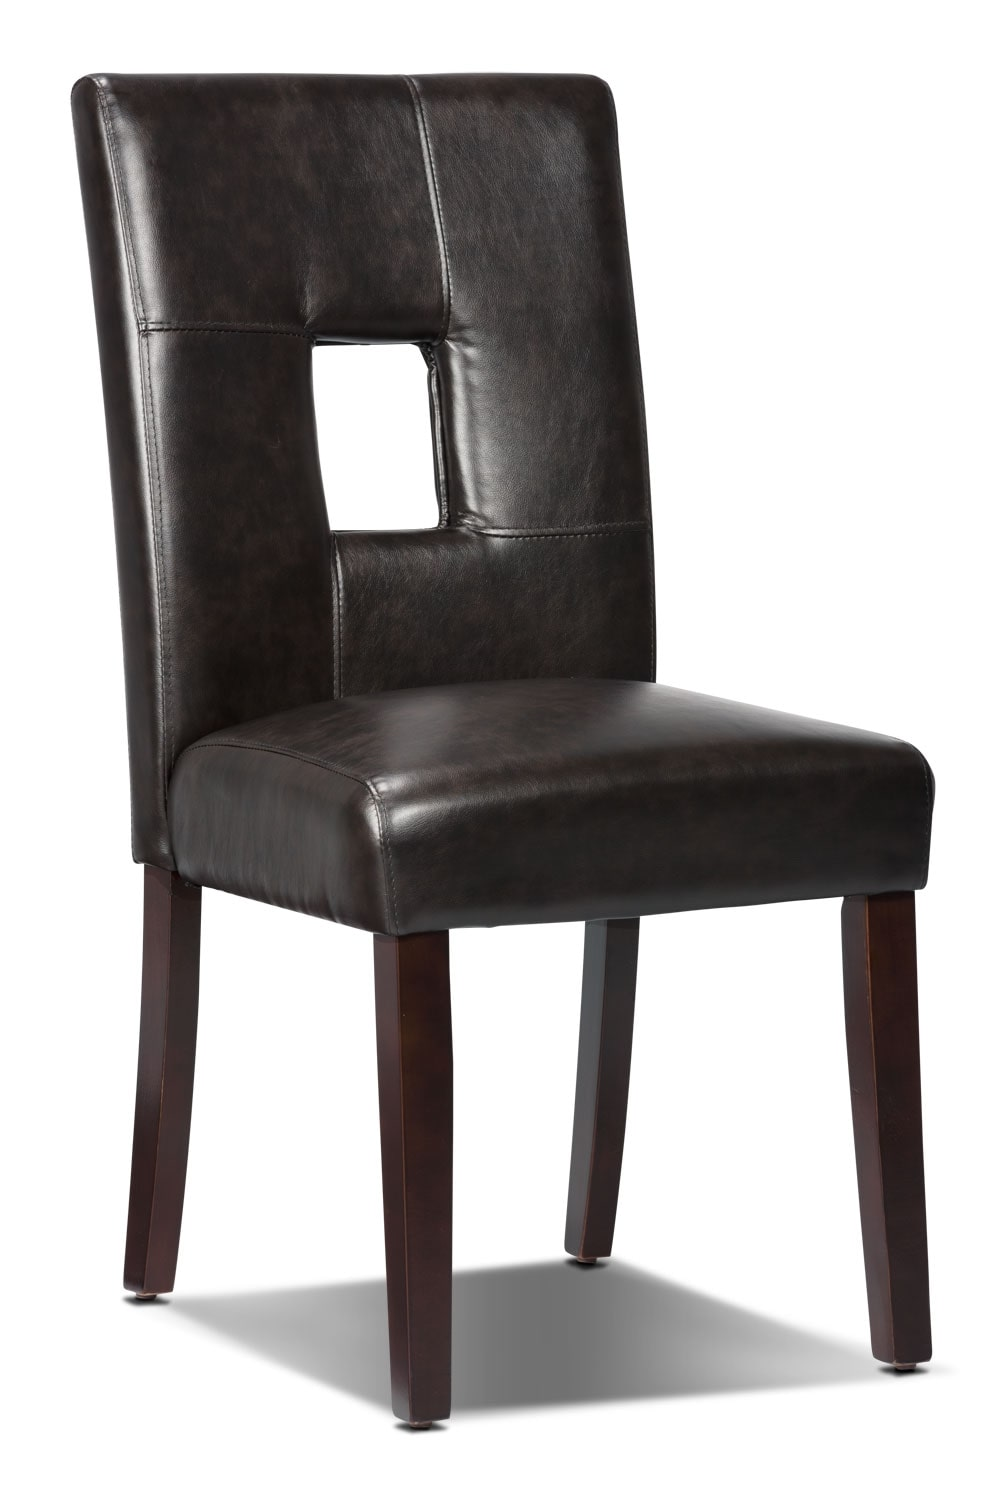 McKena Faux Leather Dining Chair – Brown